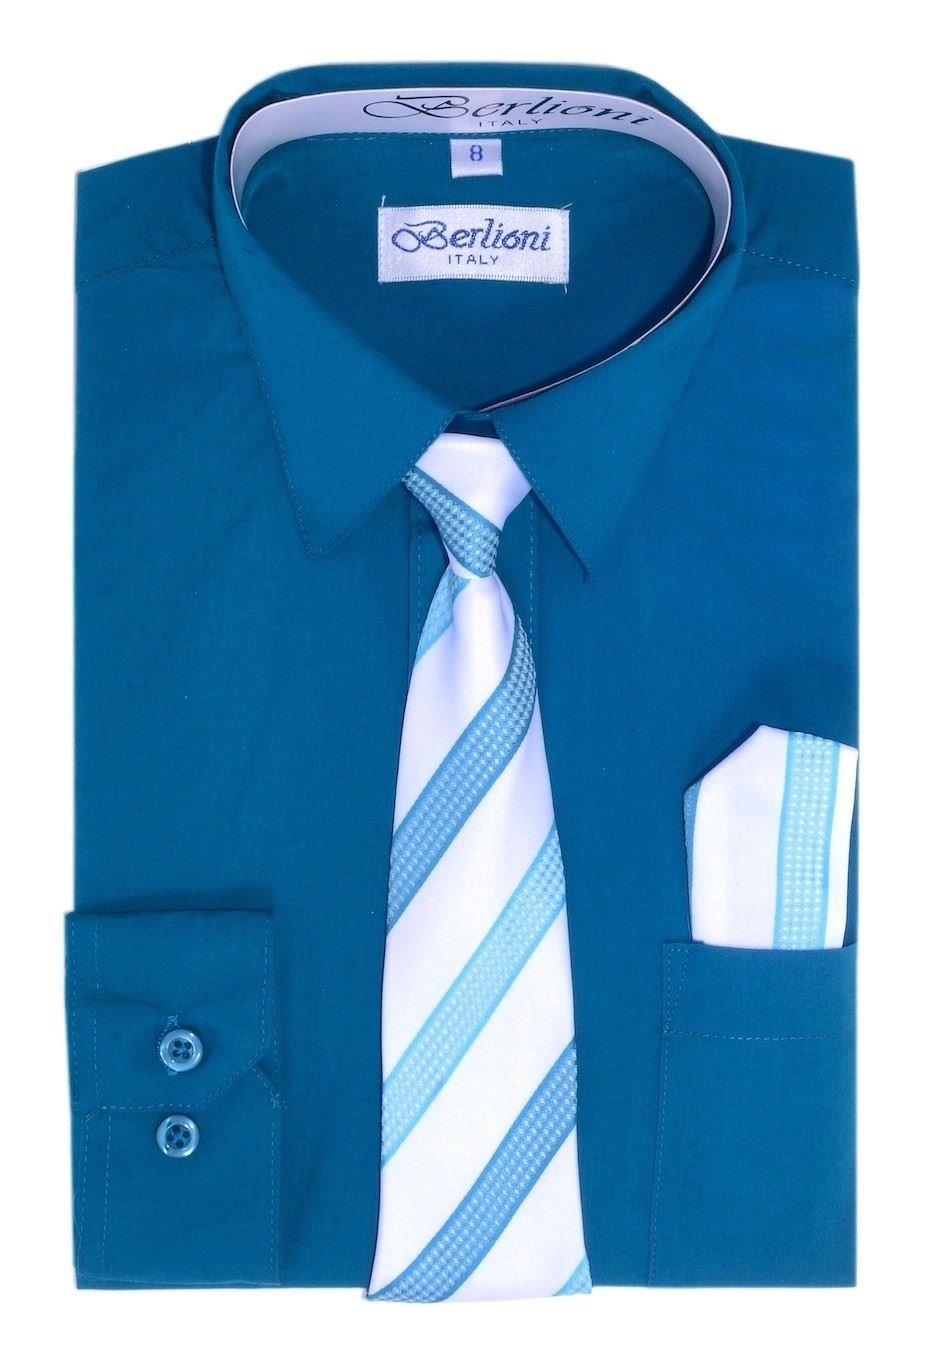 Berlioni Italy Kids Boys Dress Shirt with Tie & Hanky Long Sleeves Teal